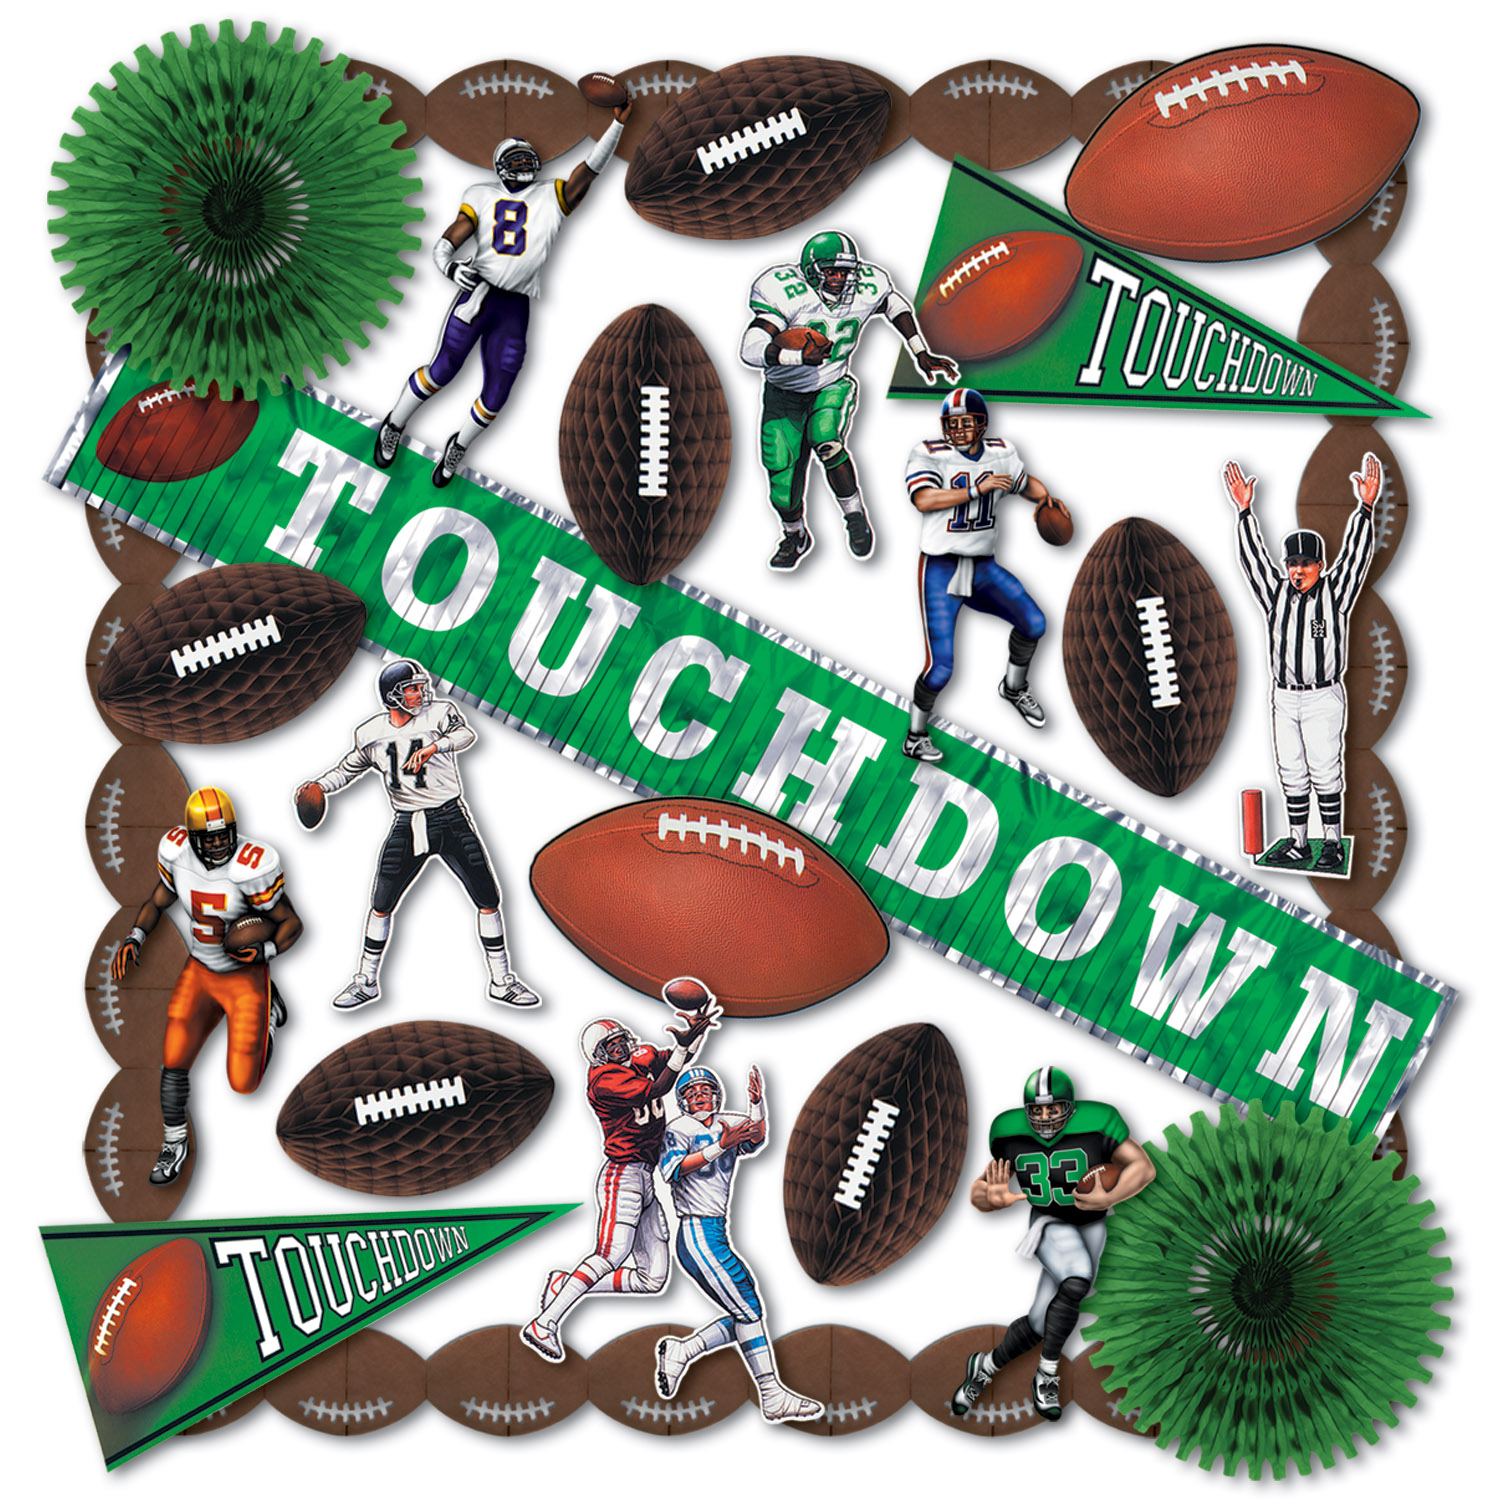 Touchdown Decorating Kit touchdown, decorating, kit, decorations, tissue, cutouts, football, pennant, figure, metallic, garlands, referee, green, white, black, brown, party, superbowl, playoffs, tailgating, fringe, banner,